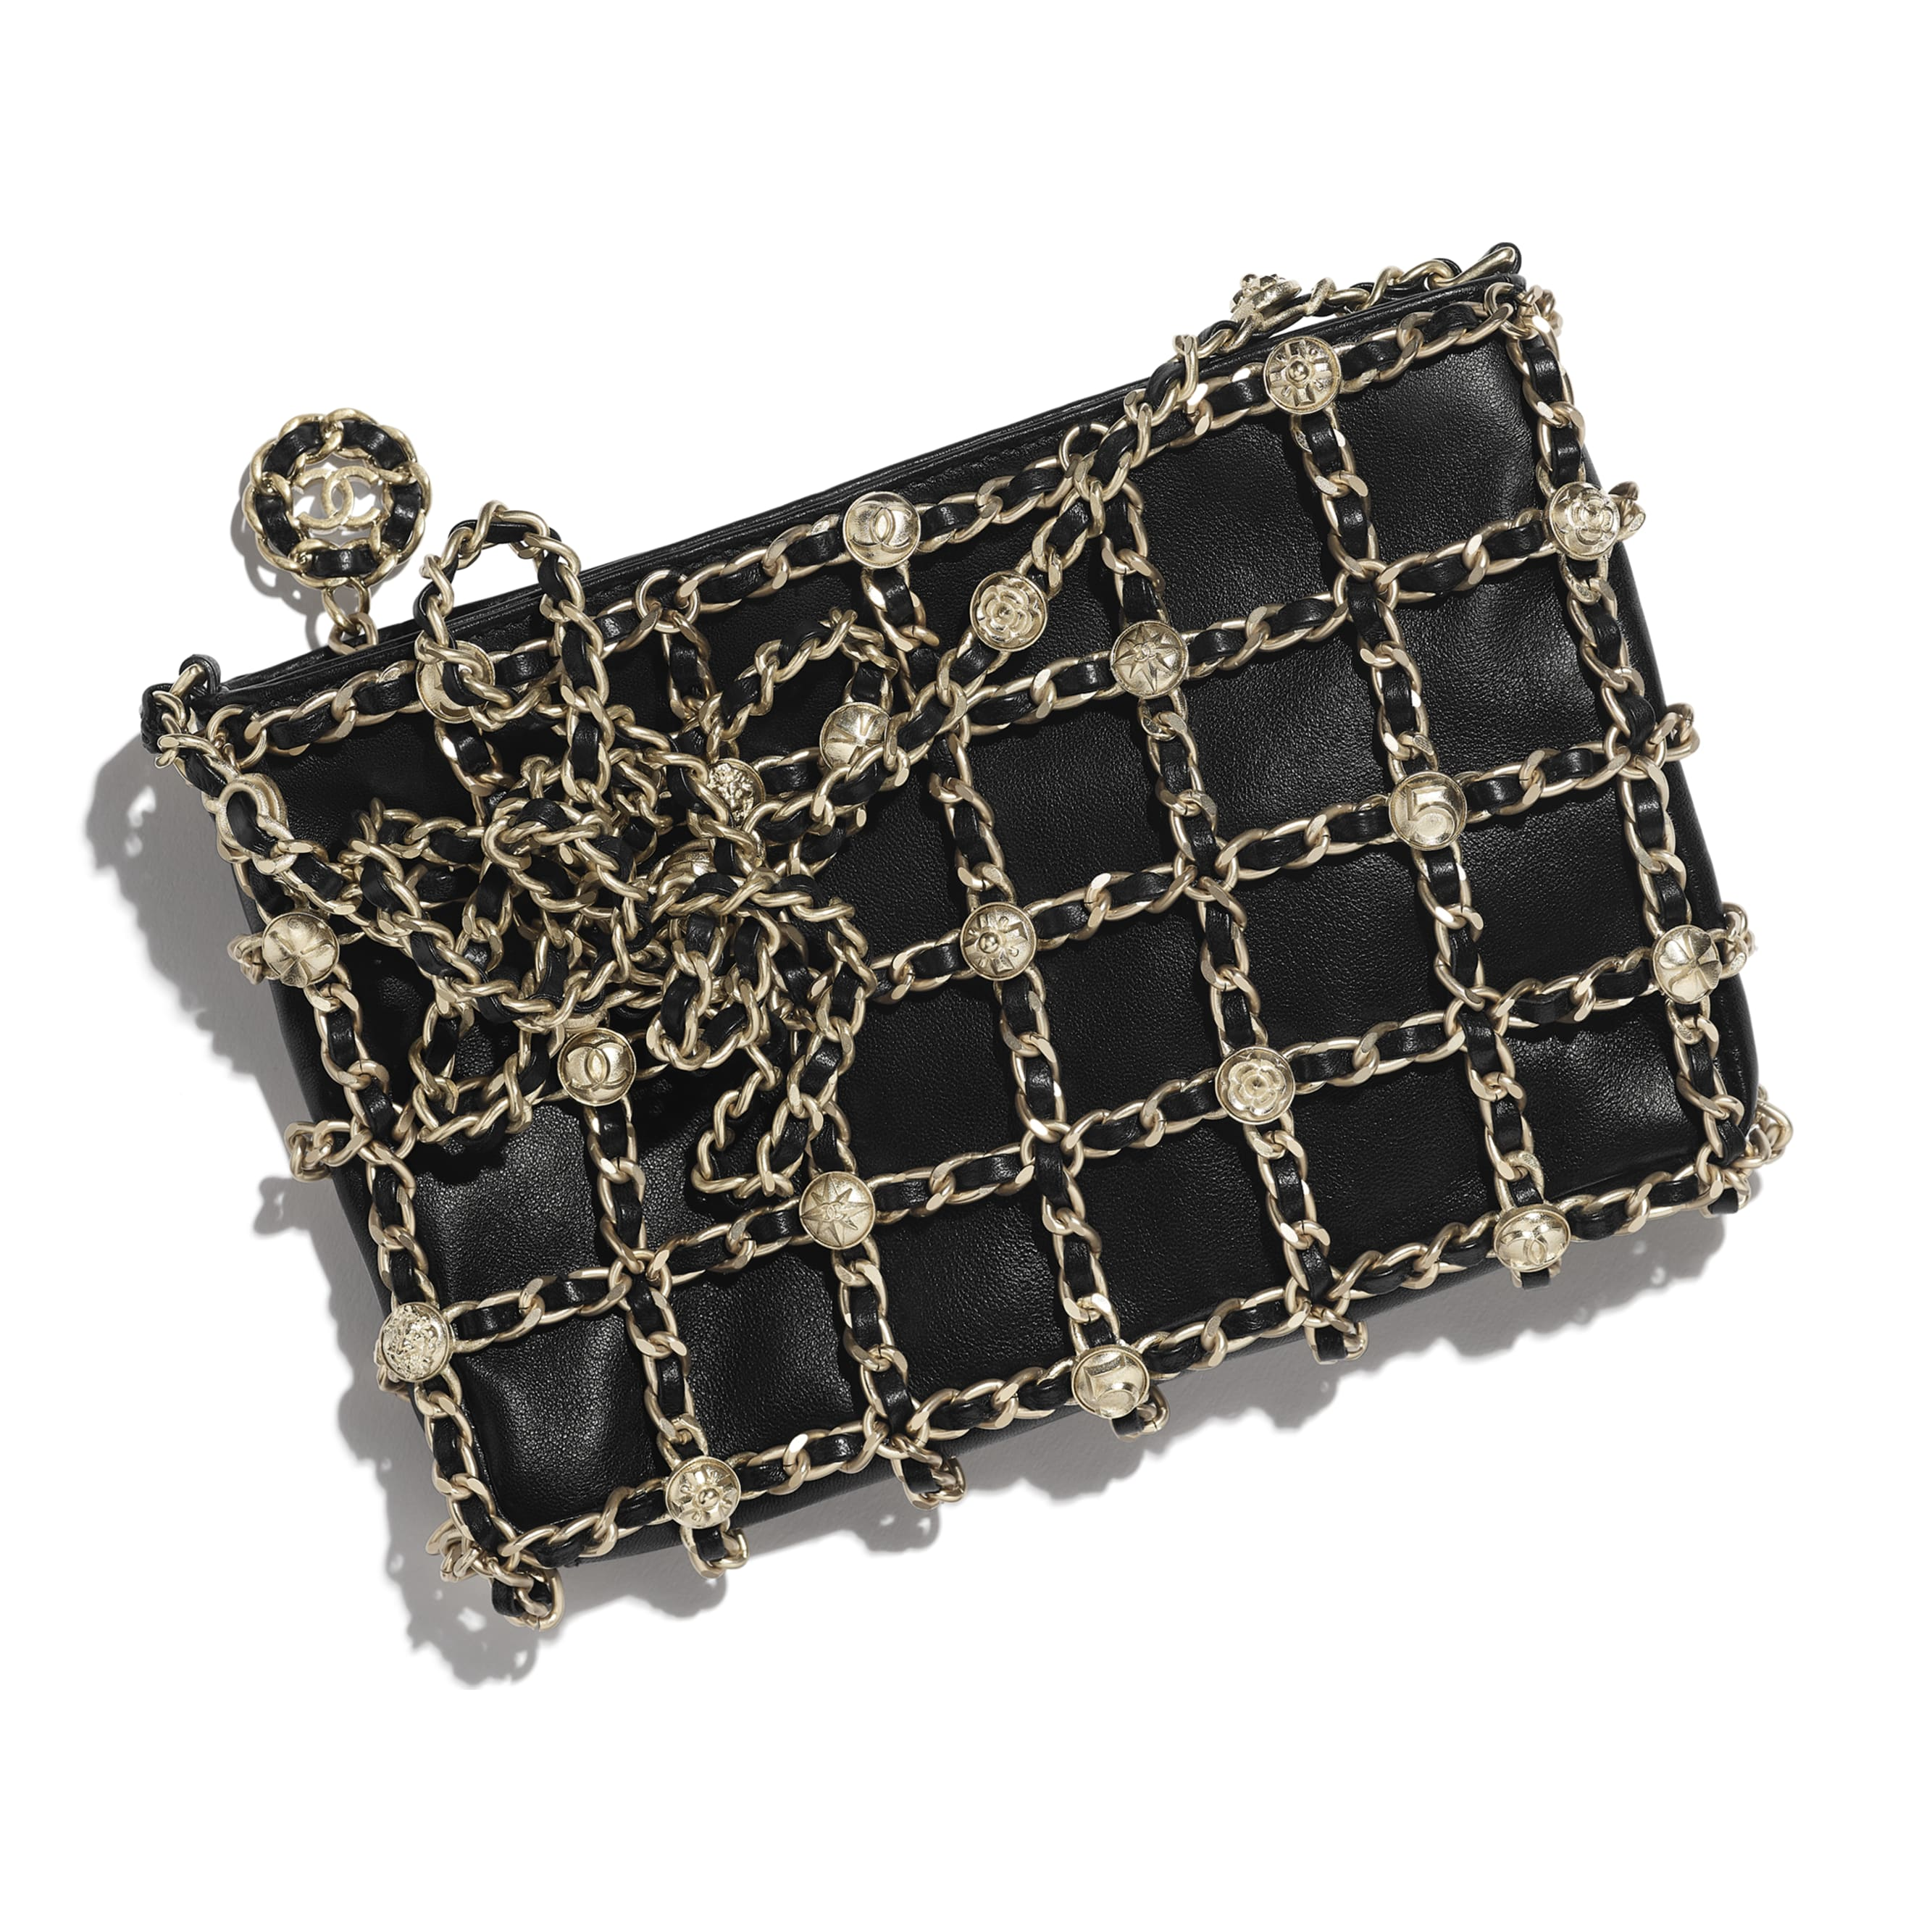 Clutch - Black - Lambskin, Studs & Gold-Tone Metal - CHANEL - Extra view - see standard sized version